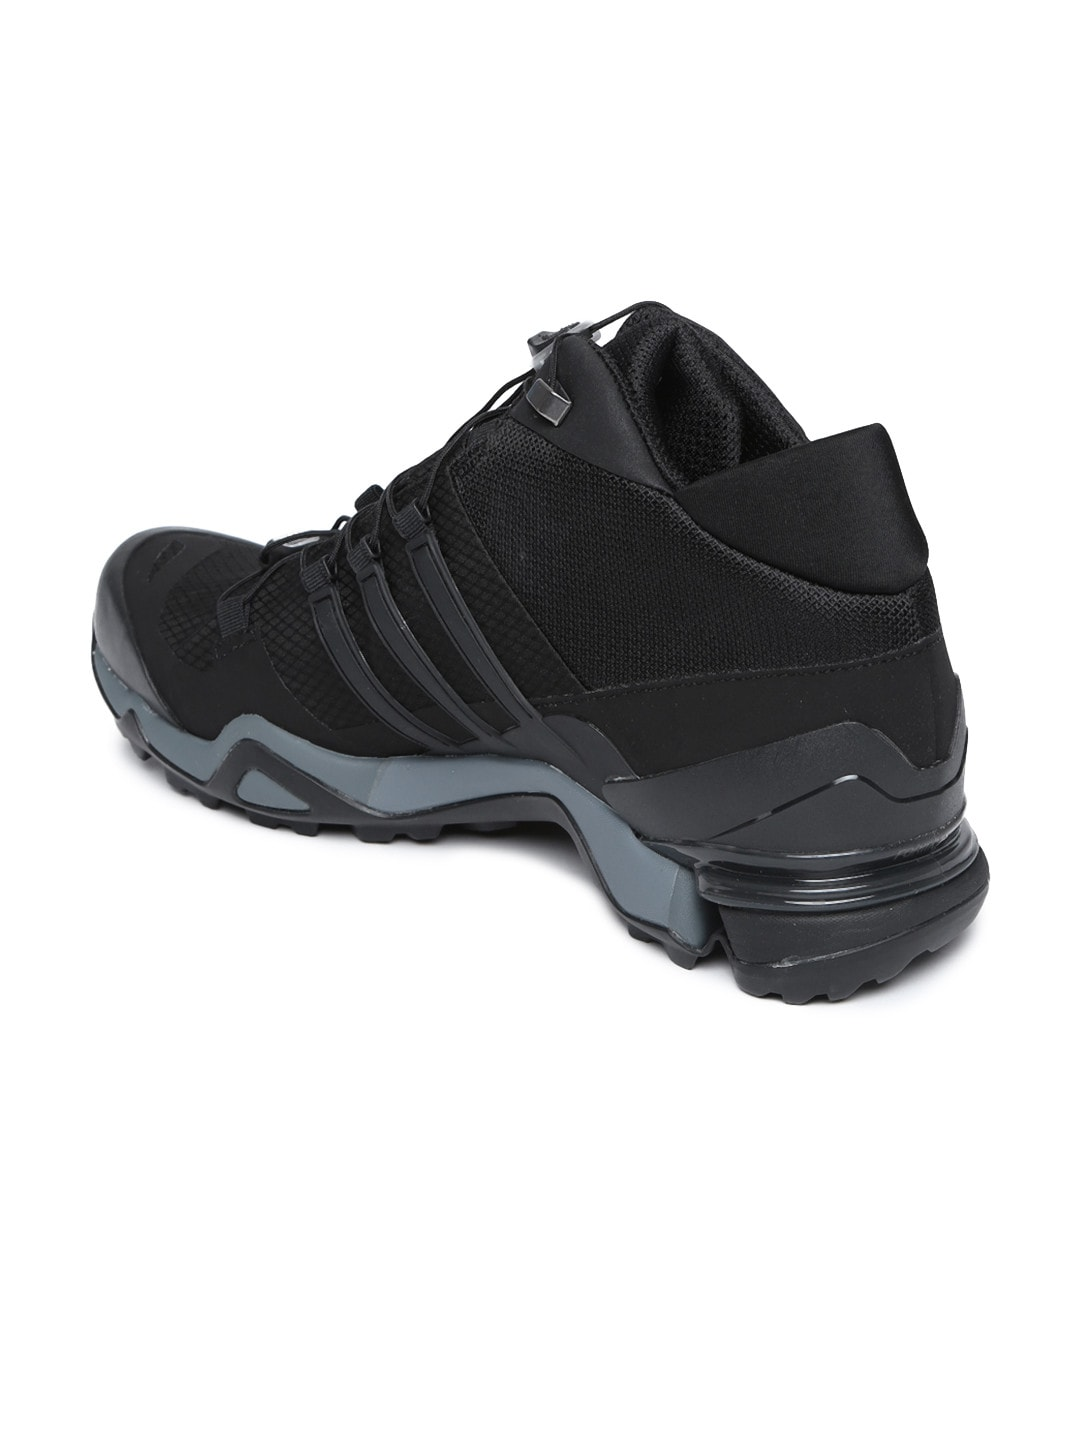 buy gt adidas all black running shoes